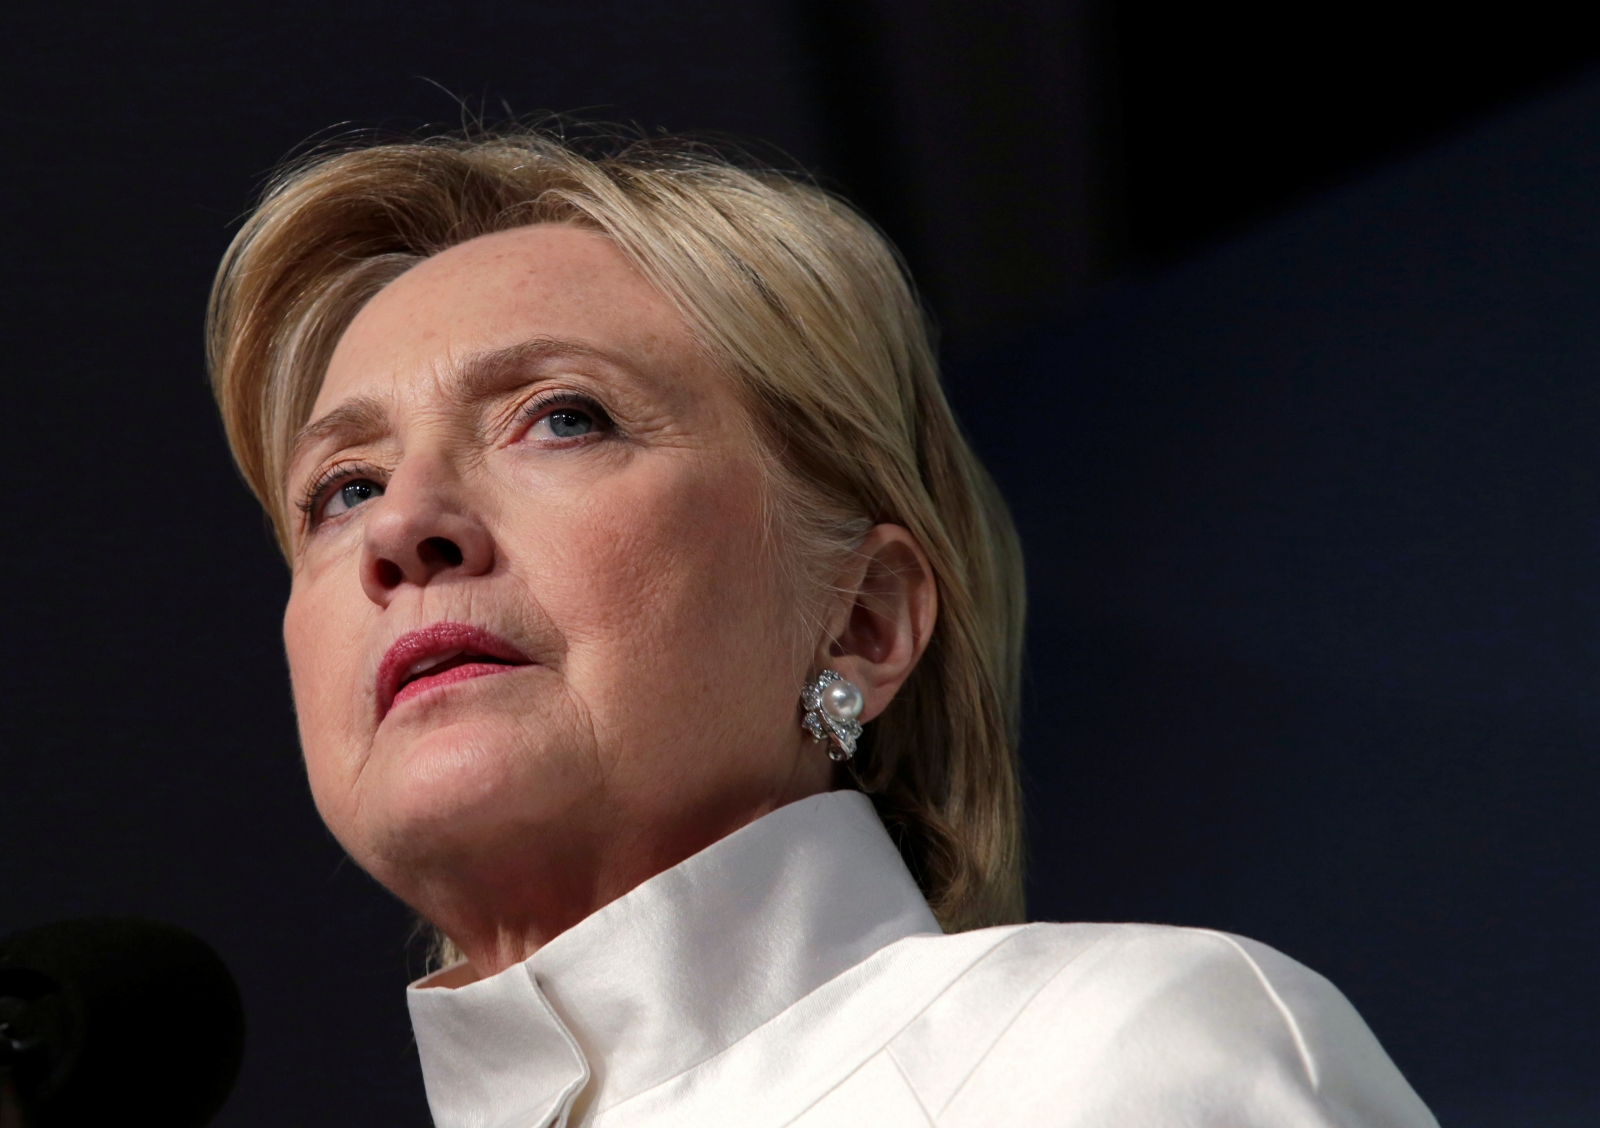 Hillary Clinton's tech specialist, who deleted emails may have asked Reddit for tips